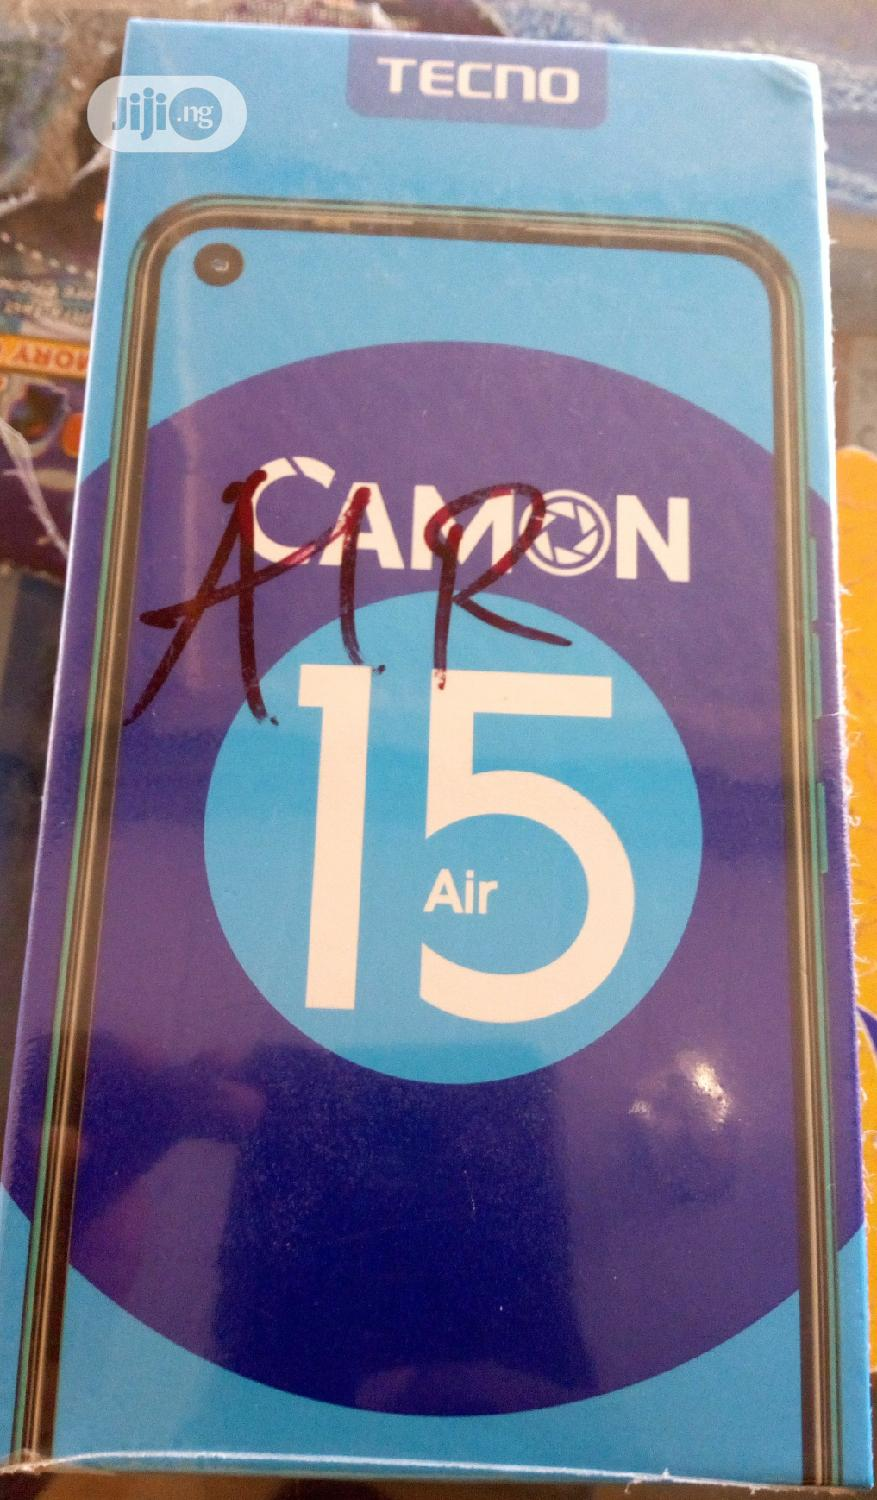 New Tecno Camon 15 Air 64 GB | Mobile Phones for sale in Wuse, Abuja (FCT) State, Nigeria